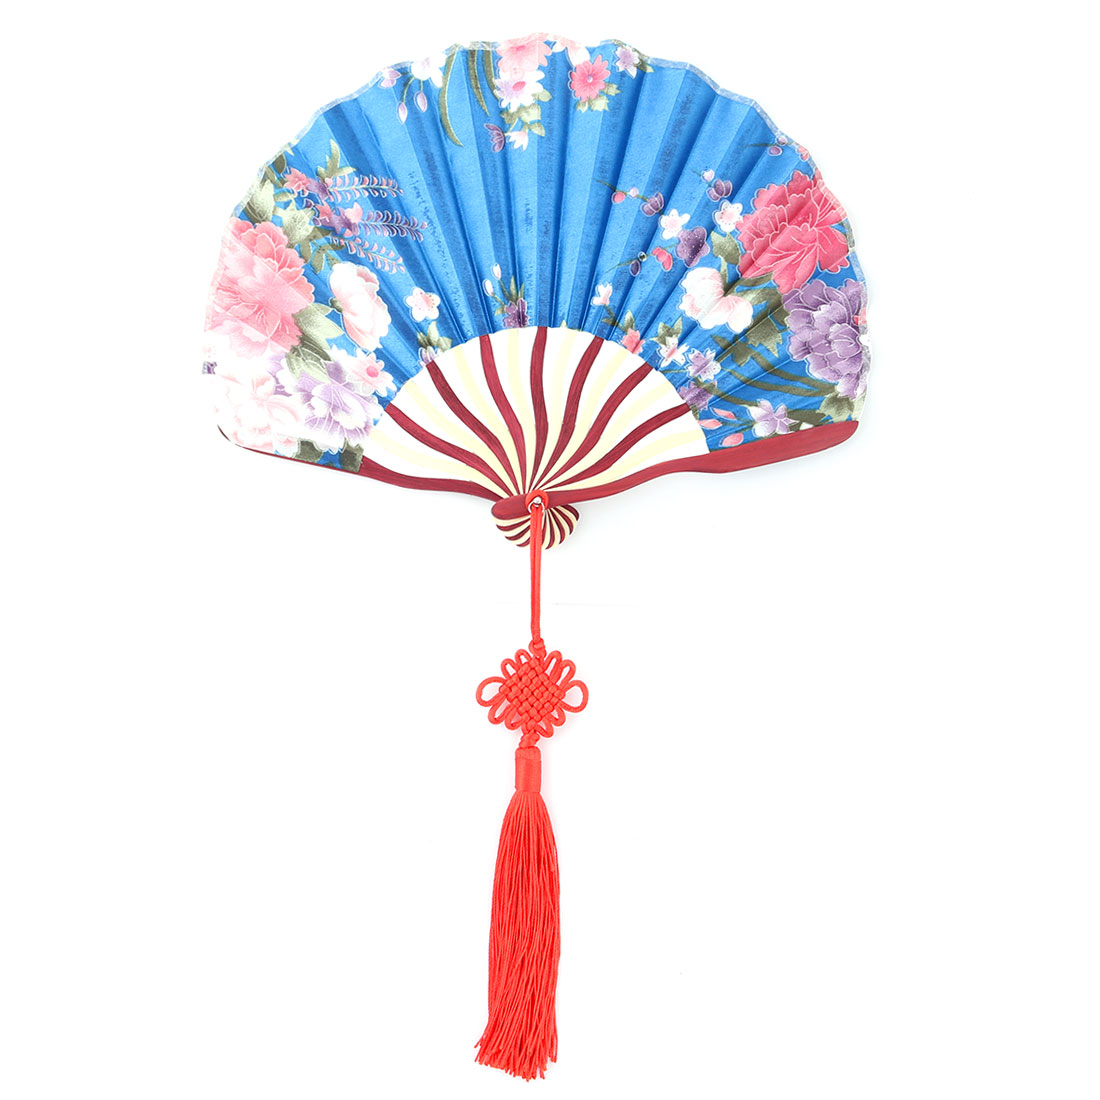 Bamboo Frame Flower Pattern Chinese Knot Tassel Decor Dancing Hand Fan Teal Blue